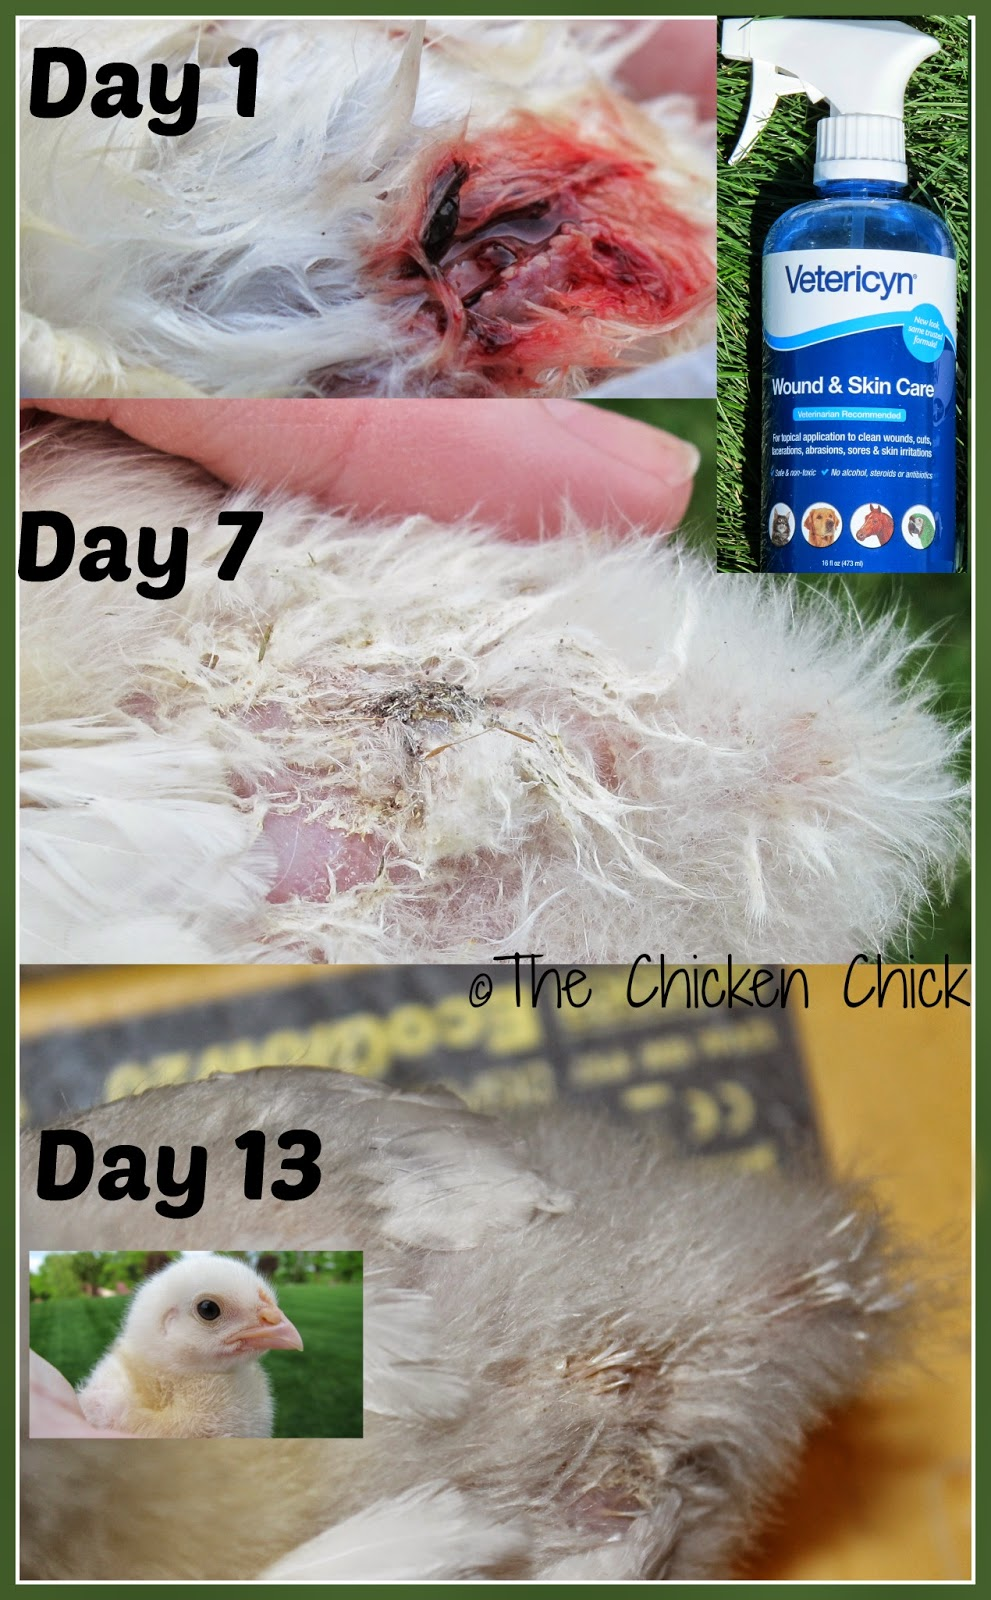 Vetericyn Wound & Infection treatment spray healed this baby chick's deep wound in 13 days!